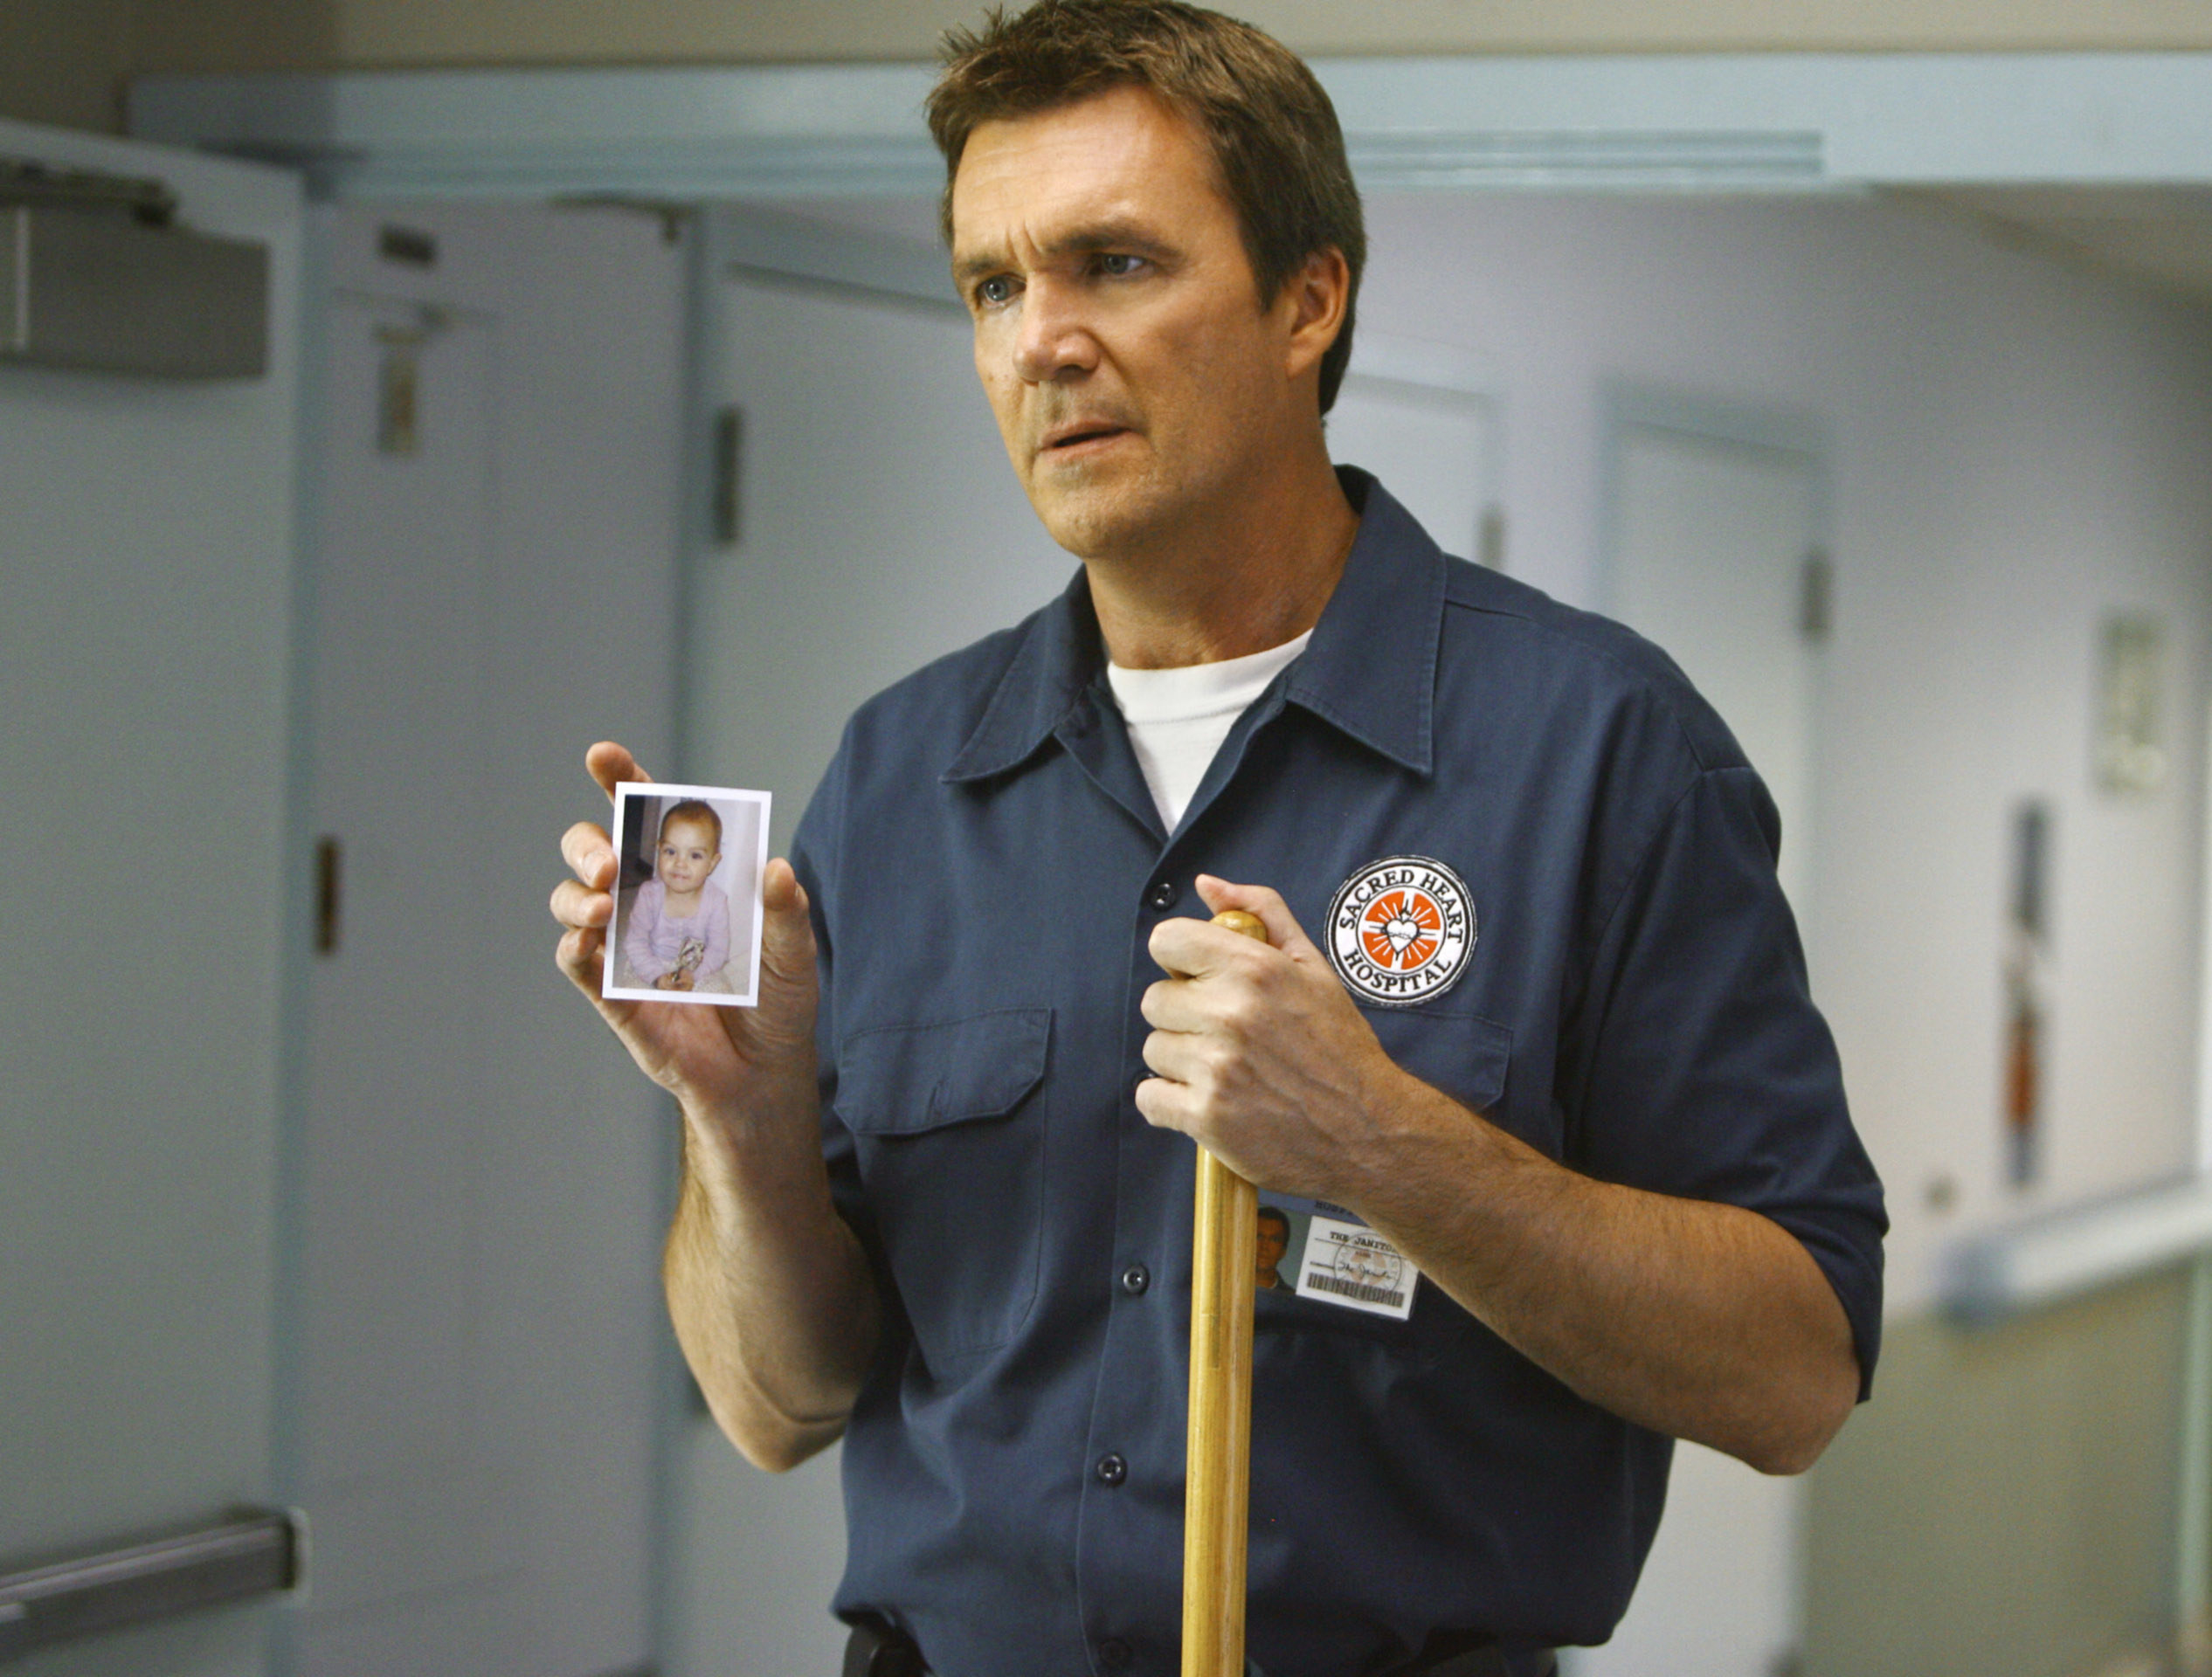 """The Janitor holding a broom and a photo of a baby on """"Scrubs"""""""